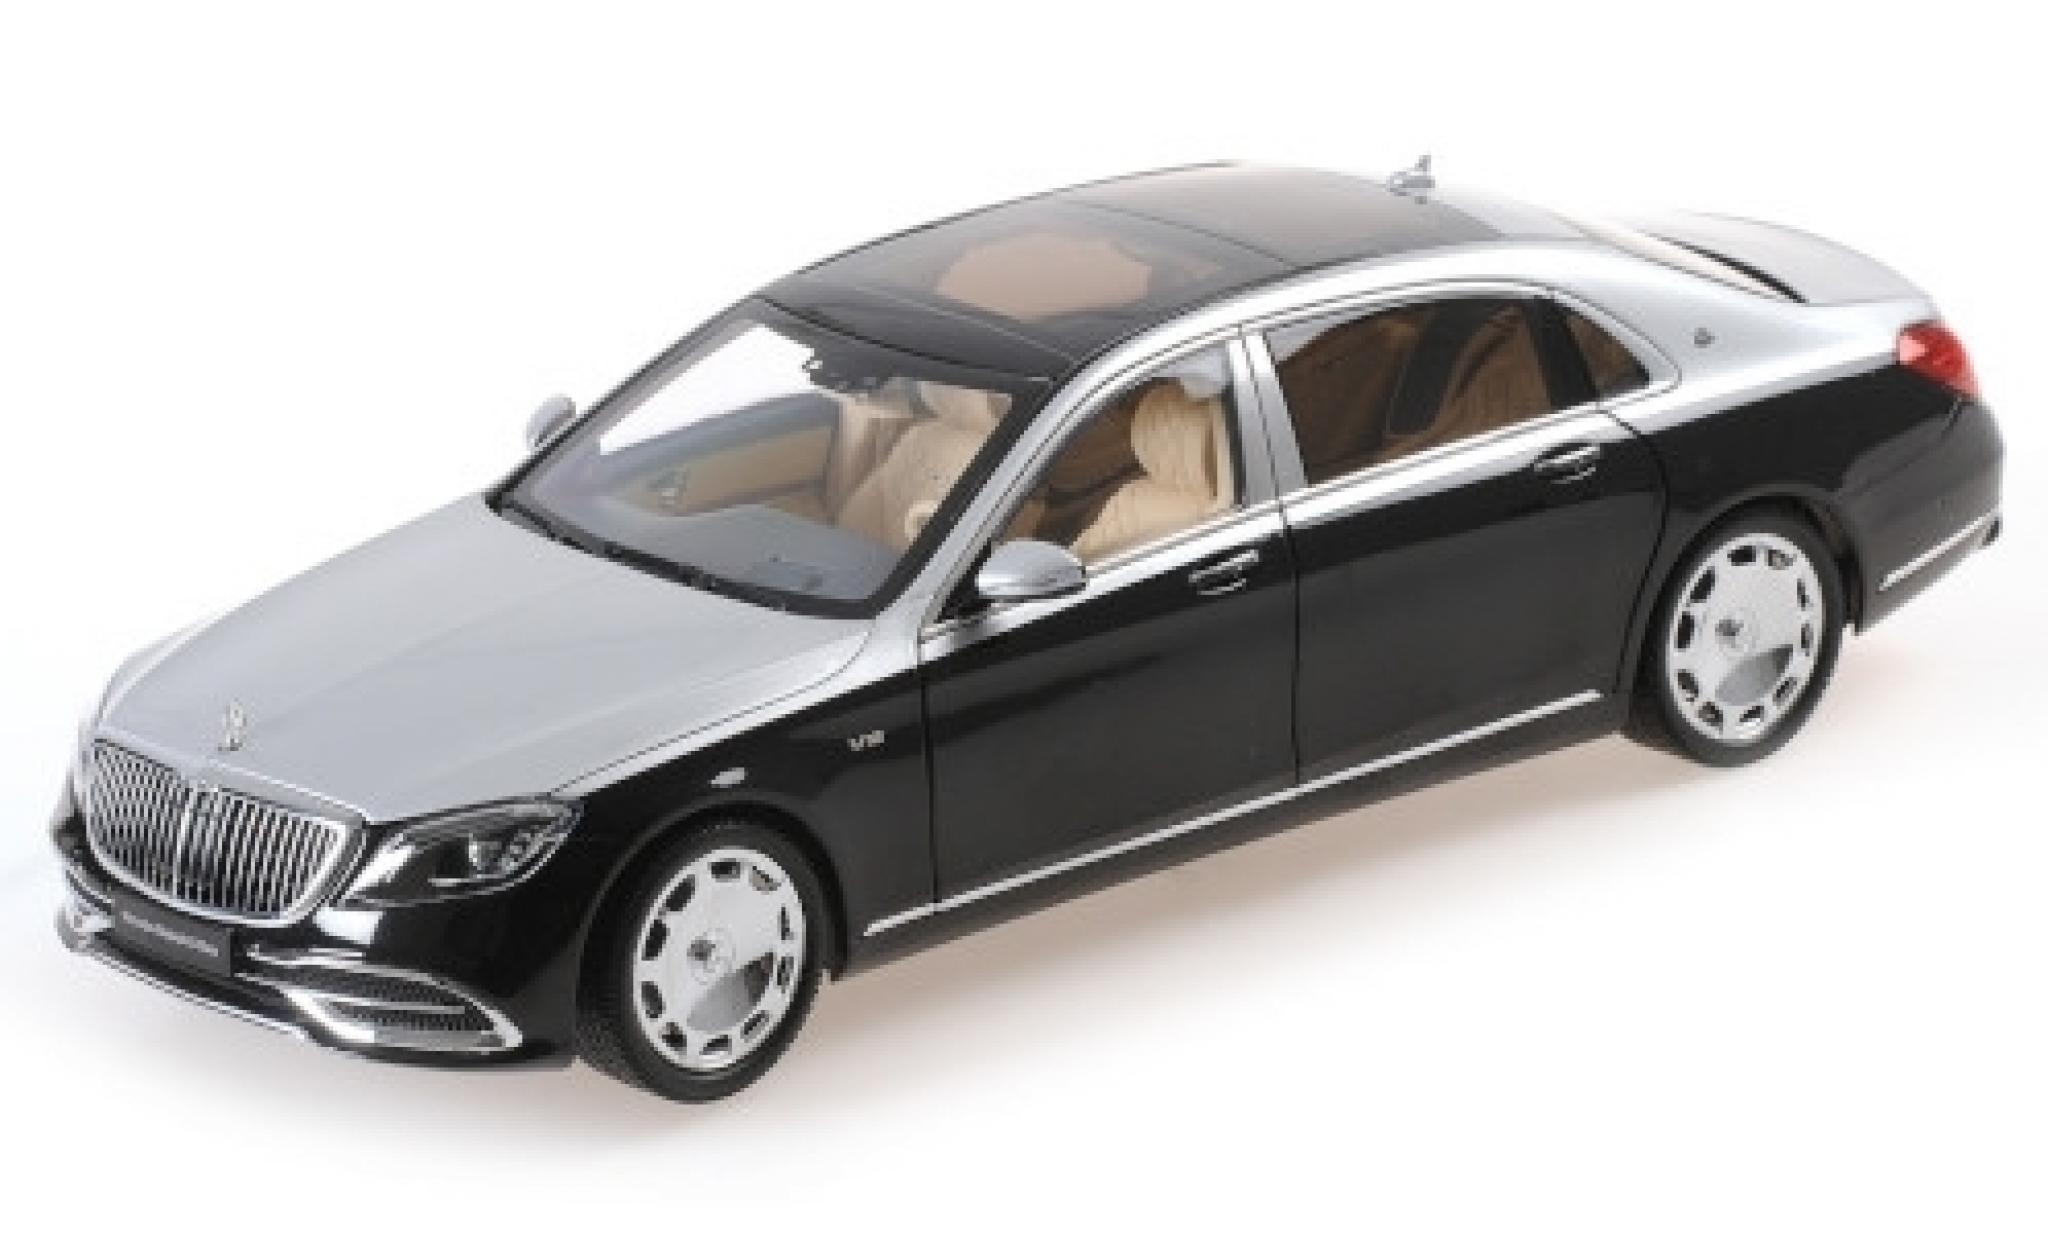 Mercedes CLA 1/18 Almost Real Maybach Classe S black/grey 2019